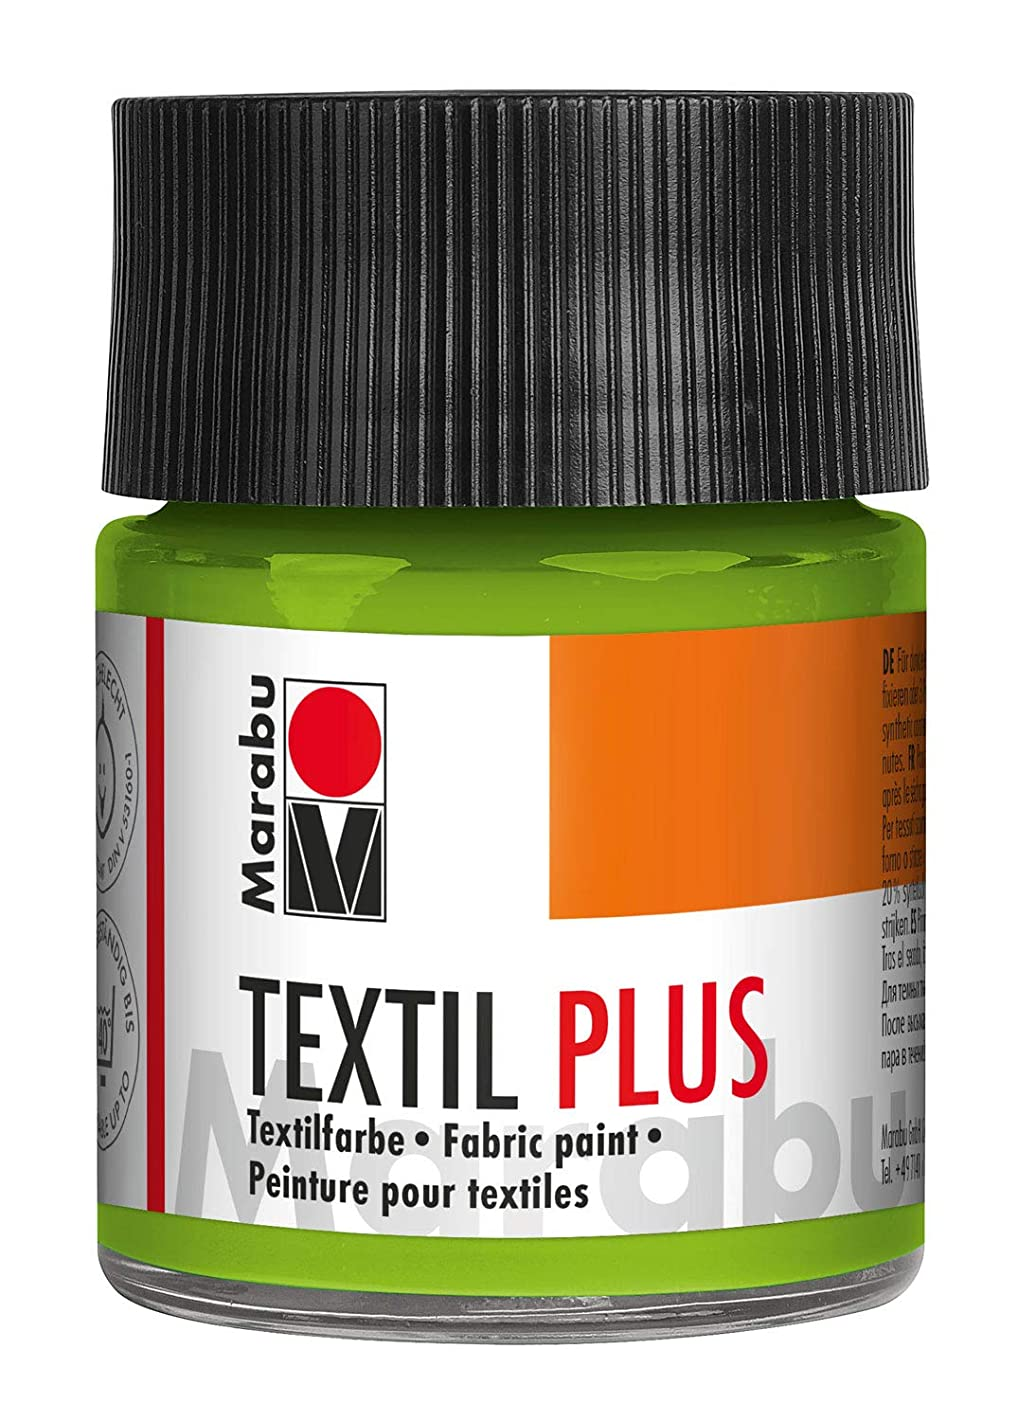 Marabu Textil Plus 17150005061 Full Coverage Fabric Paint for Dark Fabrics Suitable for Fabric Painting and Fabric Printing Washable up to 40 °C 50 ml Reseda